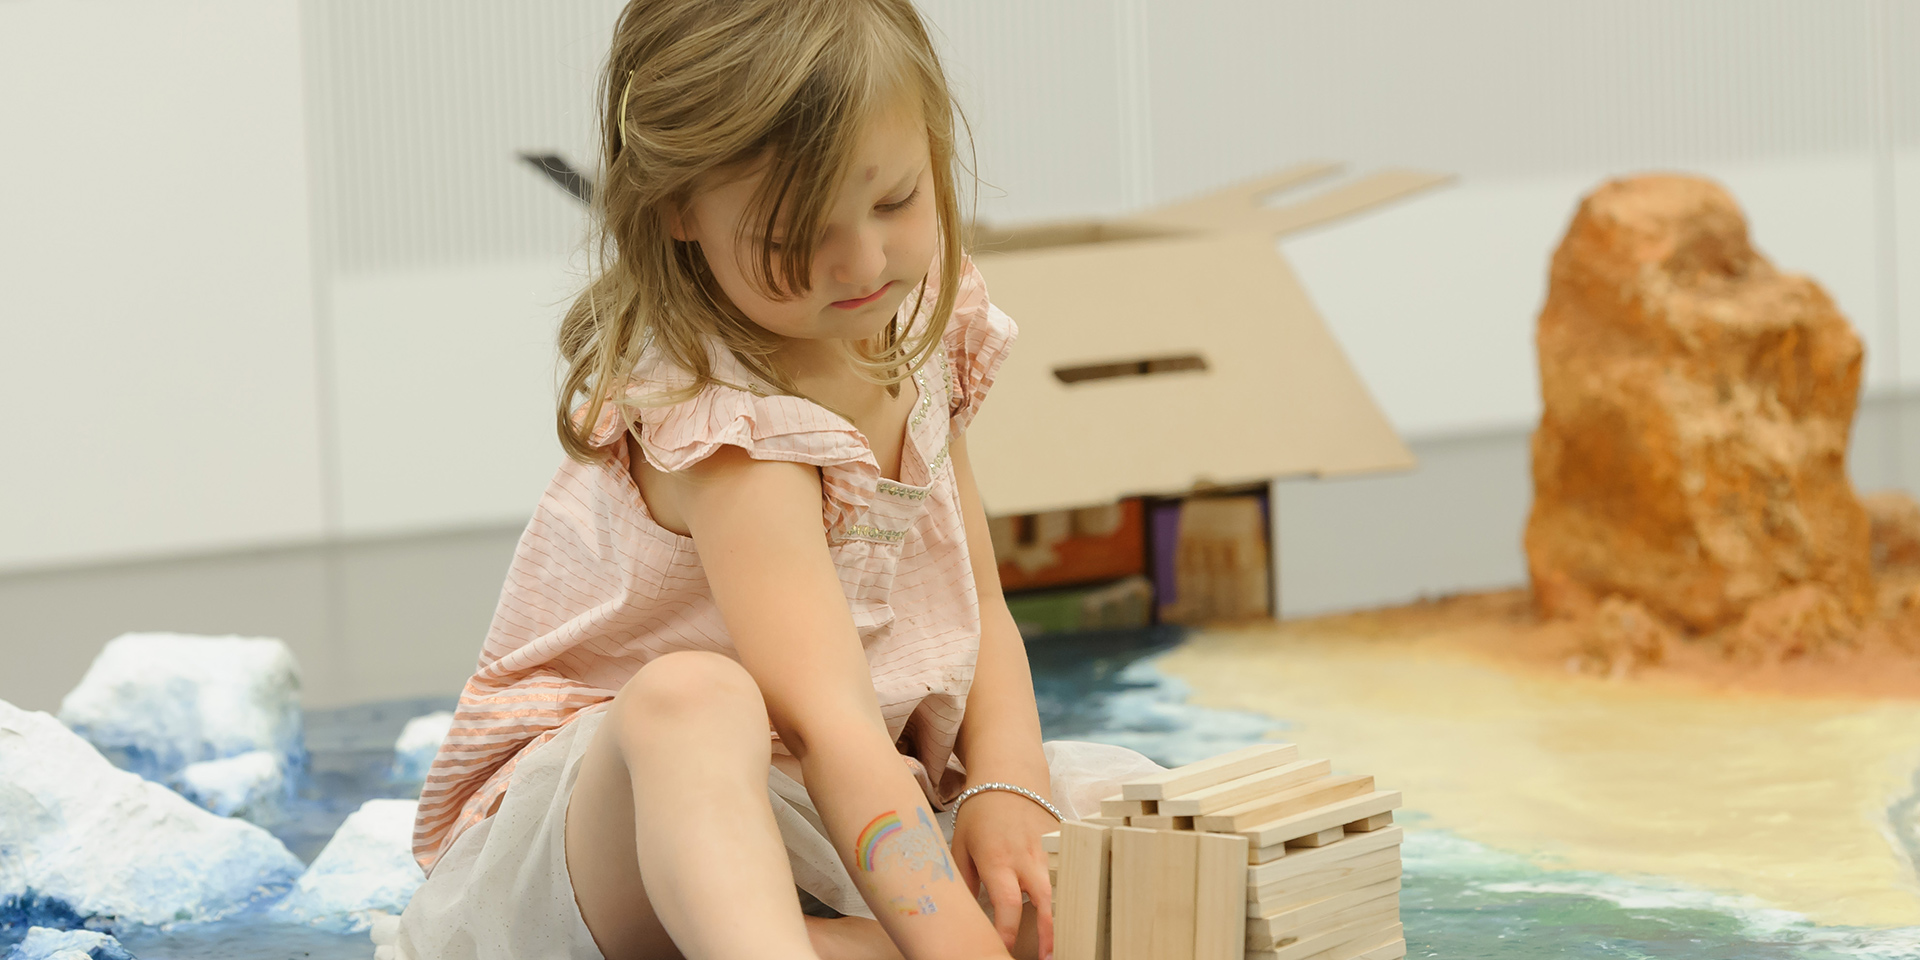 Child playing with construction blocks